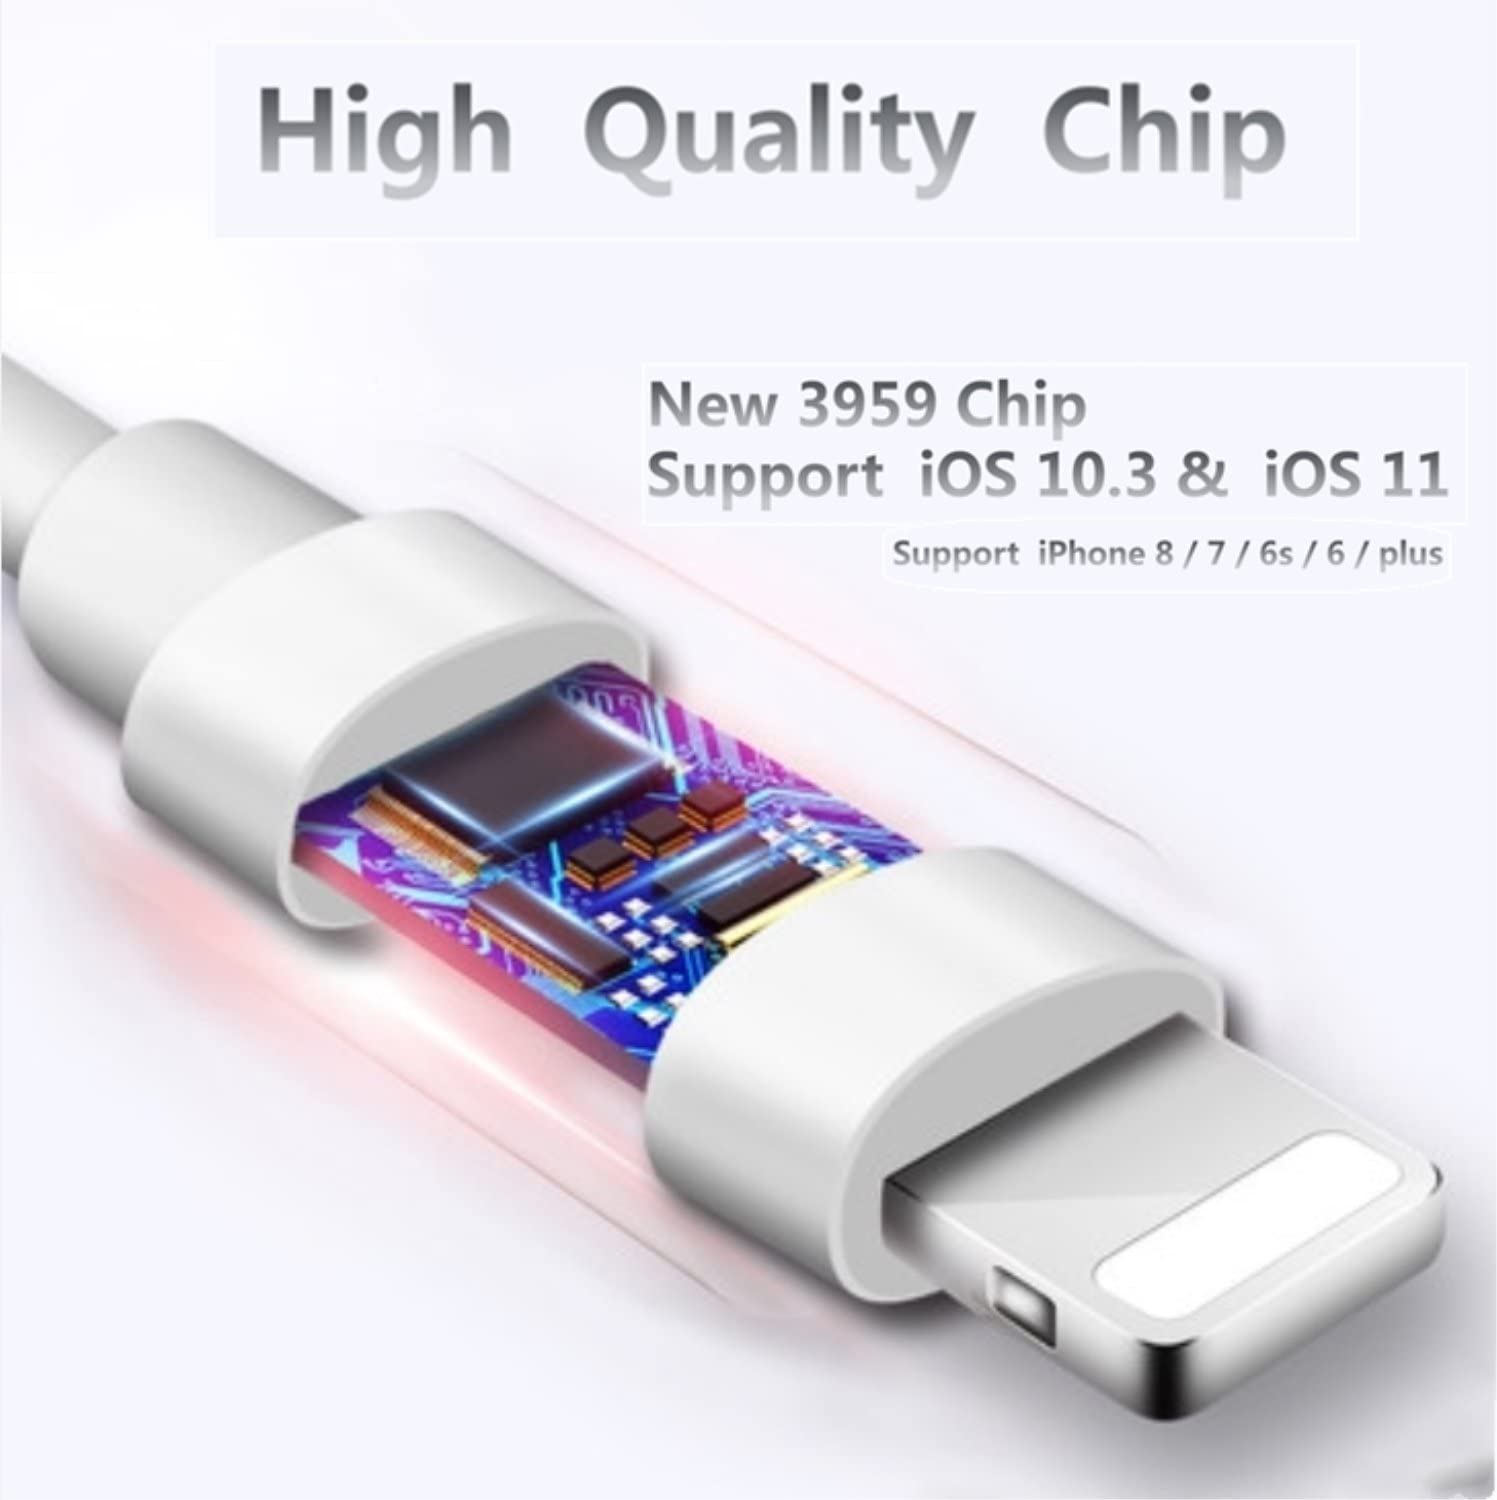 iphone 7 / 7 plus / 8 / X adapter, (Support iOS 10.3, 11)Cone 2 in 1 Lightning Adapter and Charger, Lightning to 3.5mm Aux Headphone Jack Audio Gender ...